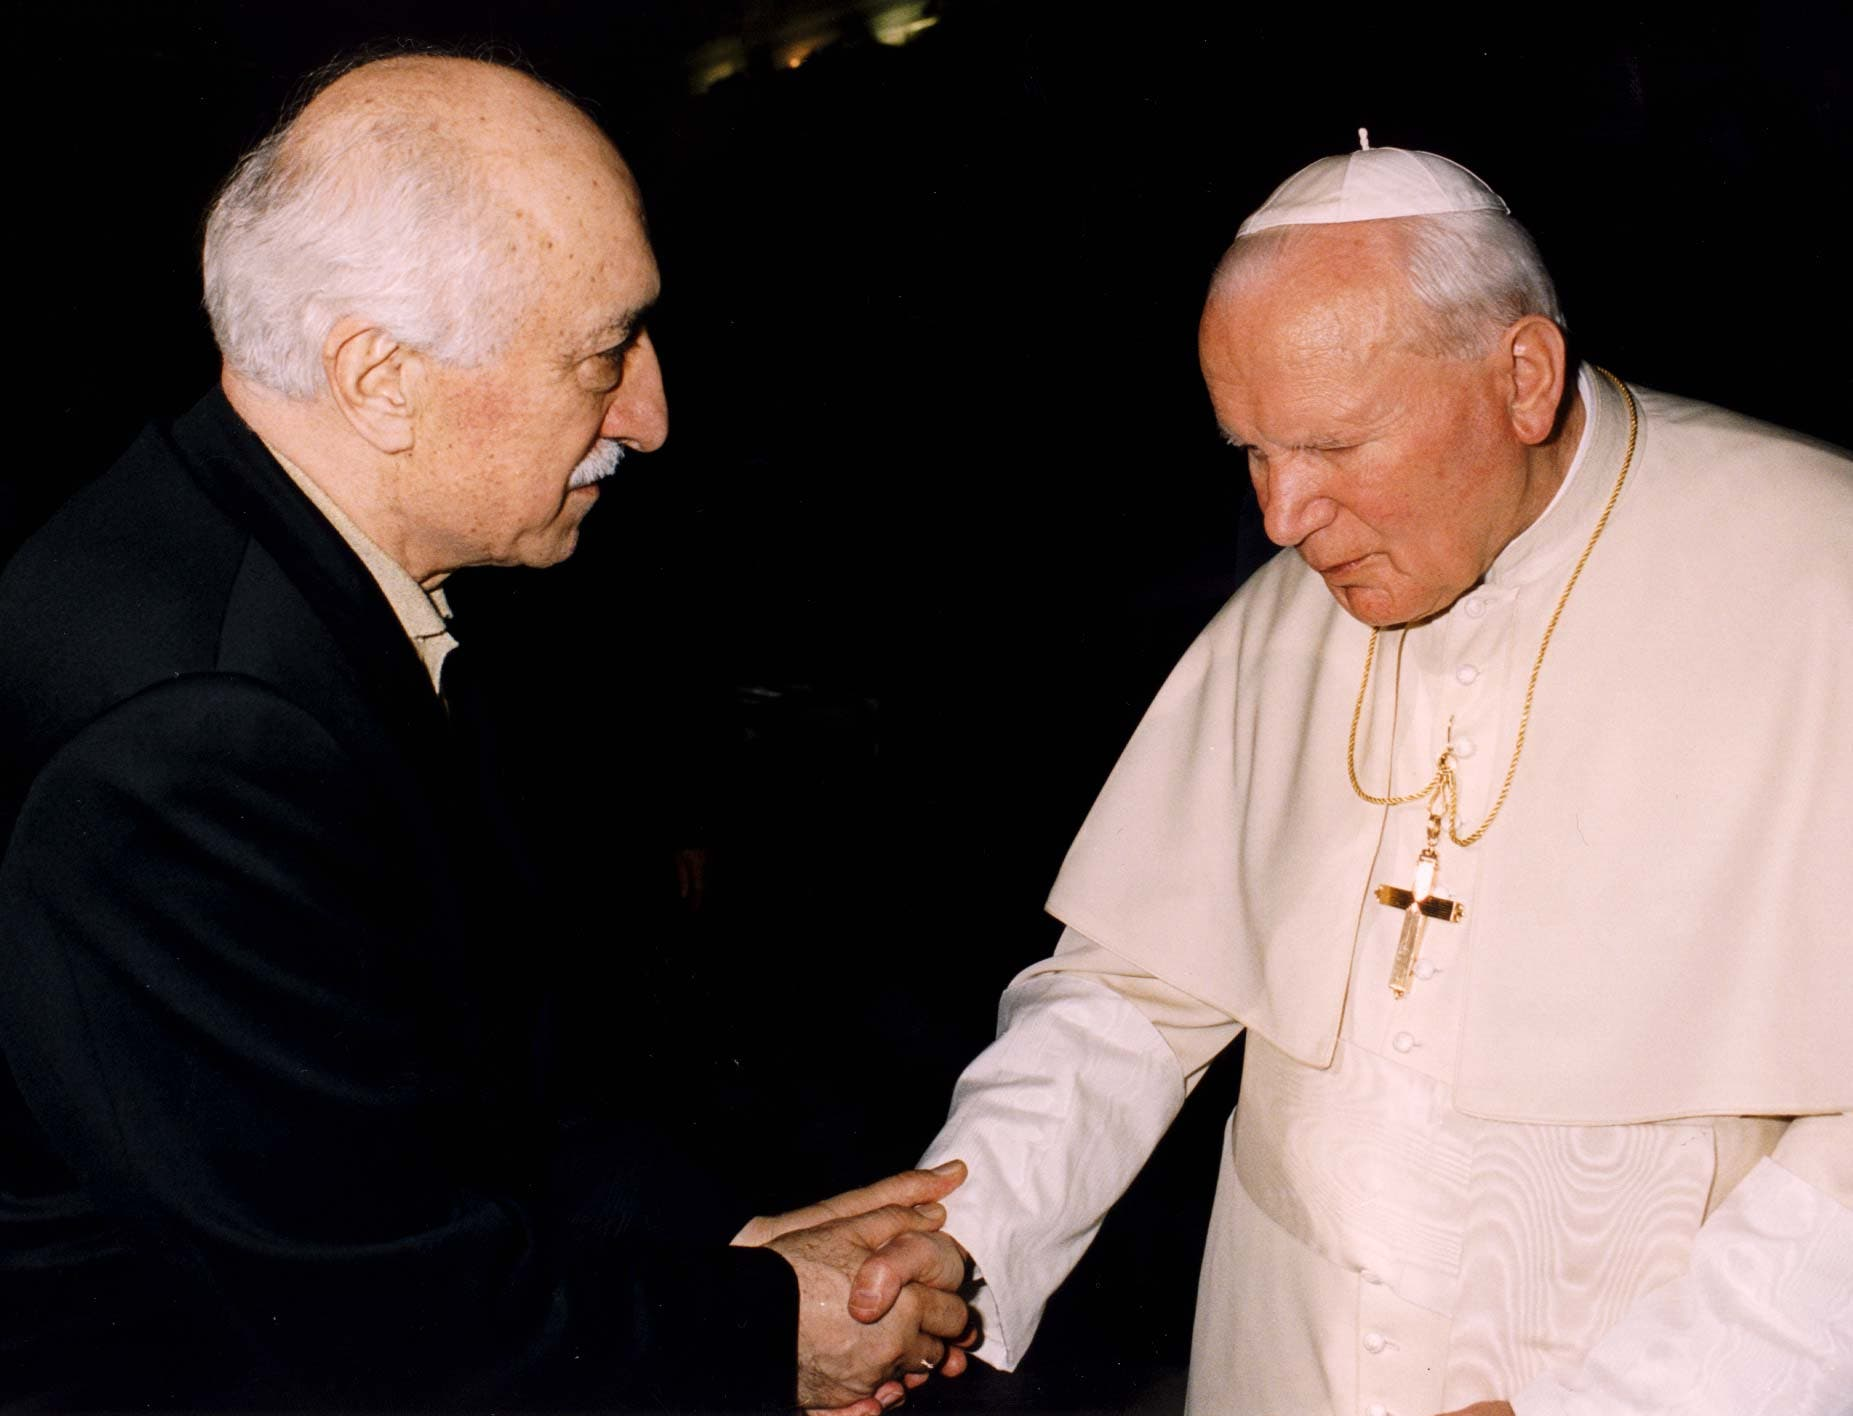 Turkey's Muslim spiritual leader Fethullah Gulen, at left, shakes hands with Pope John Paul II as they meet at the Vatican on February 9, 1998. (AP)